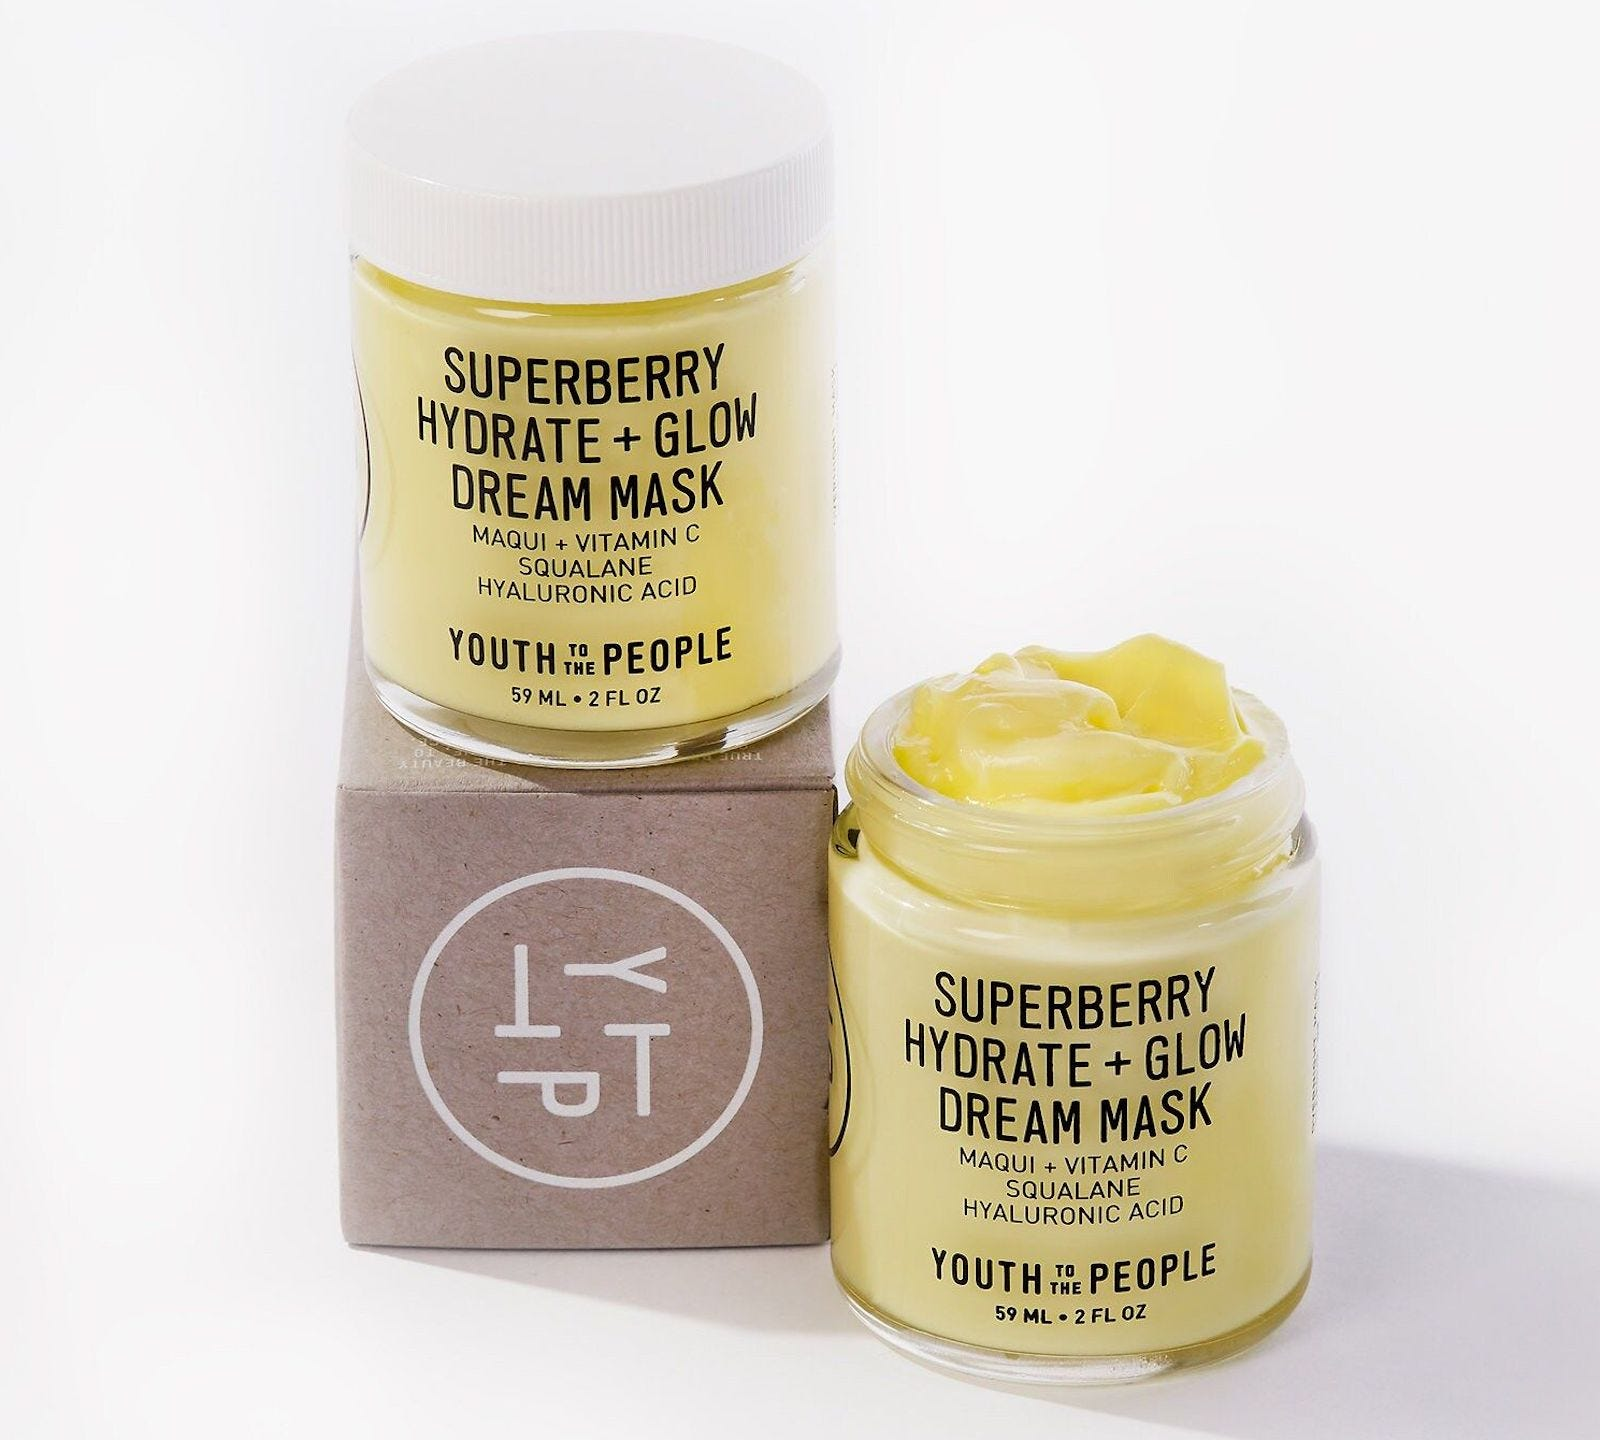 Two jars of SuperBerry Hydrate + Glow Dream Mask.